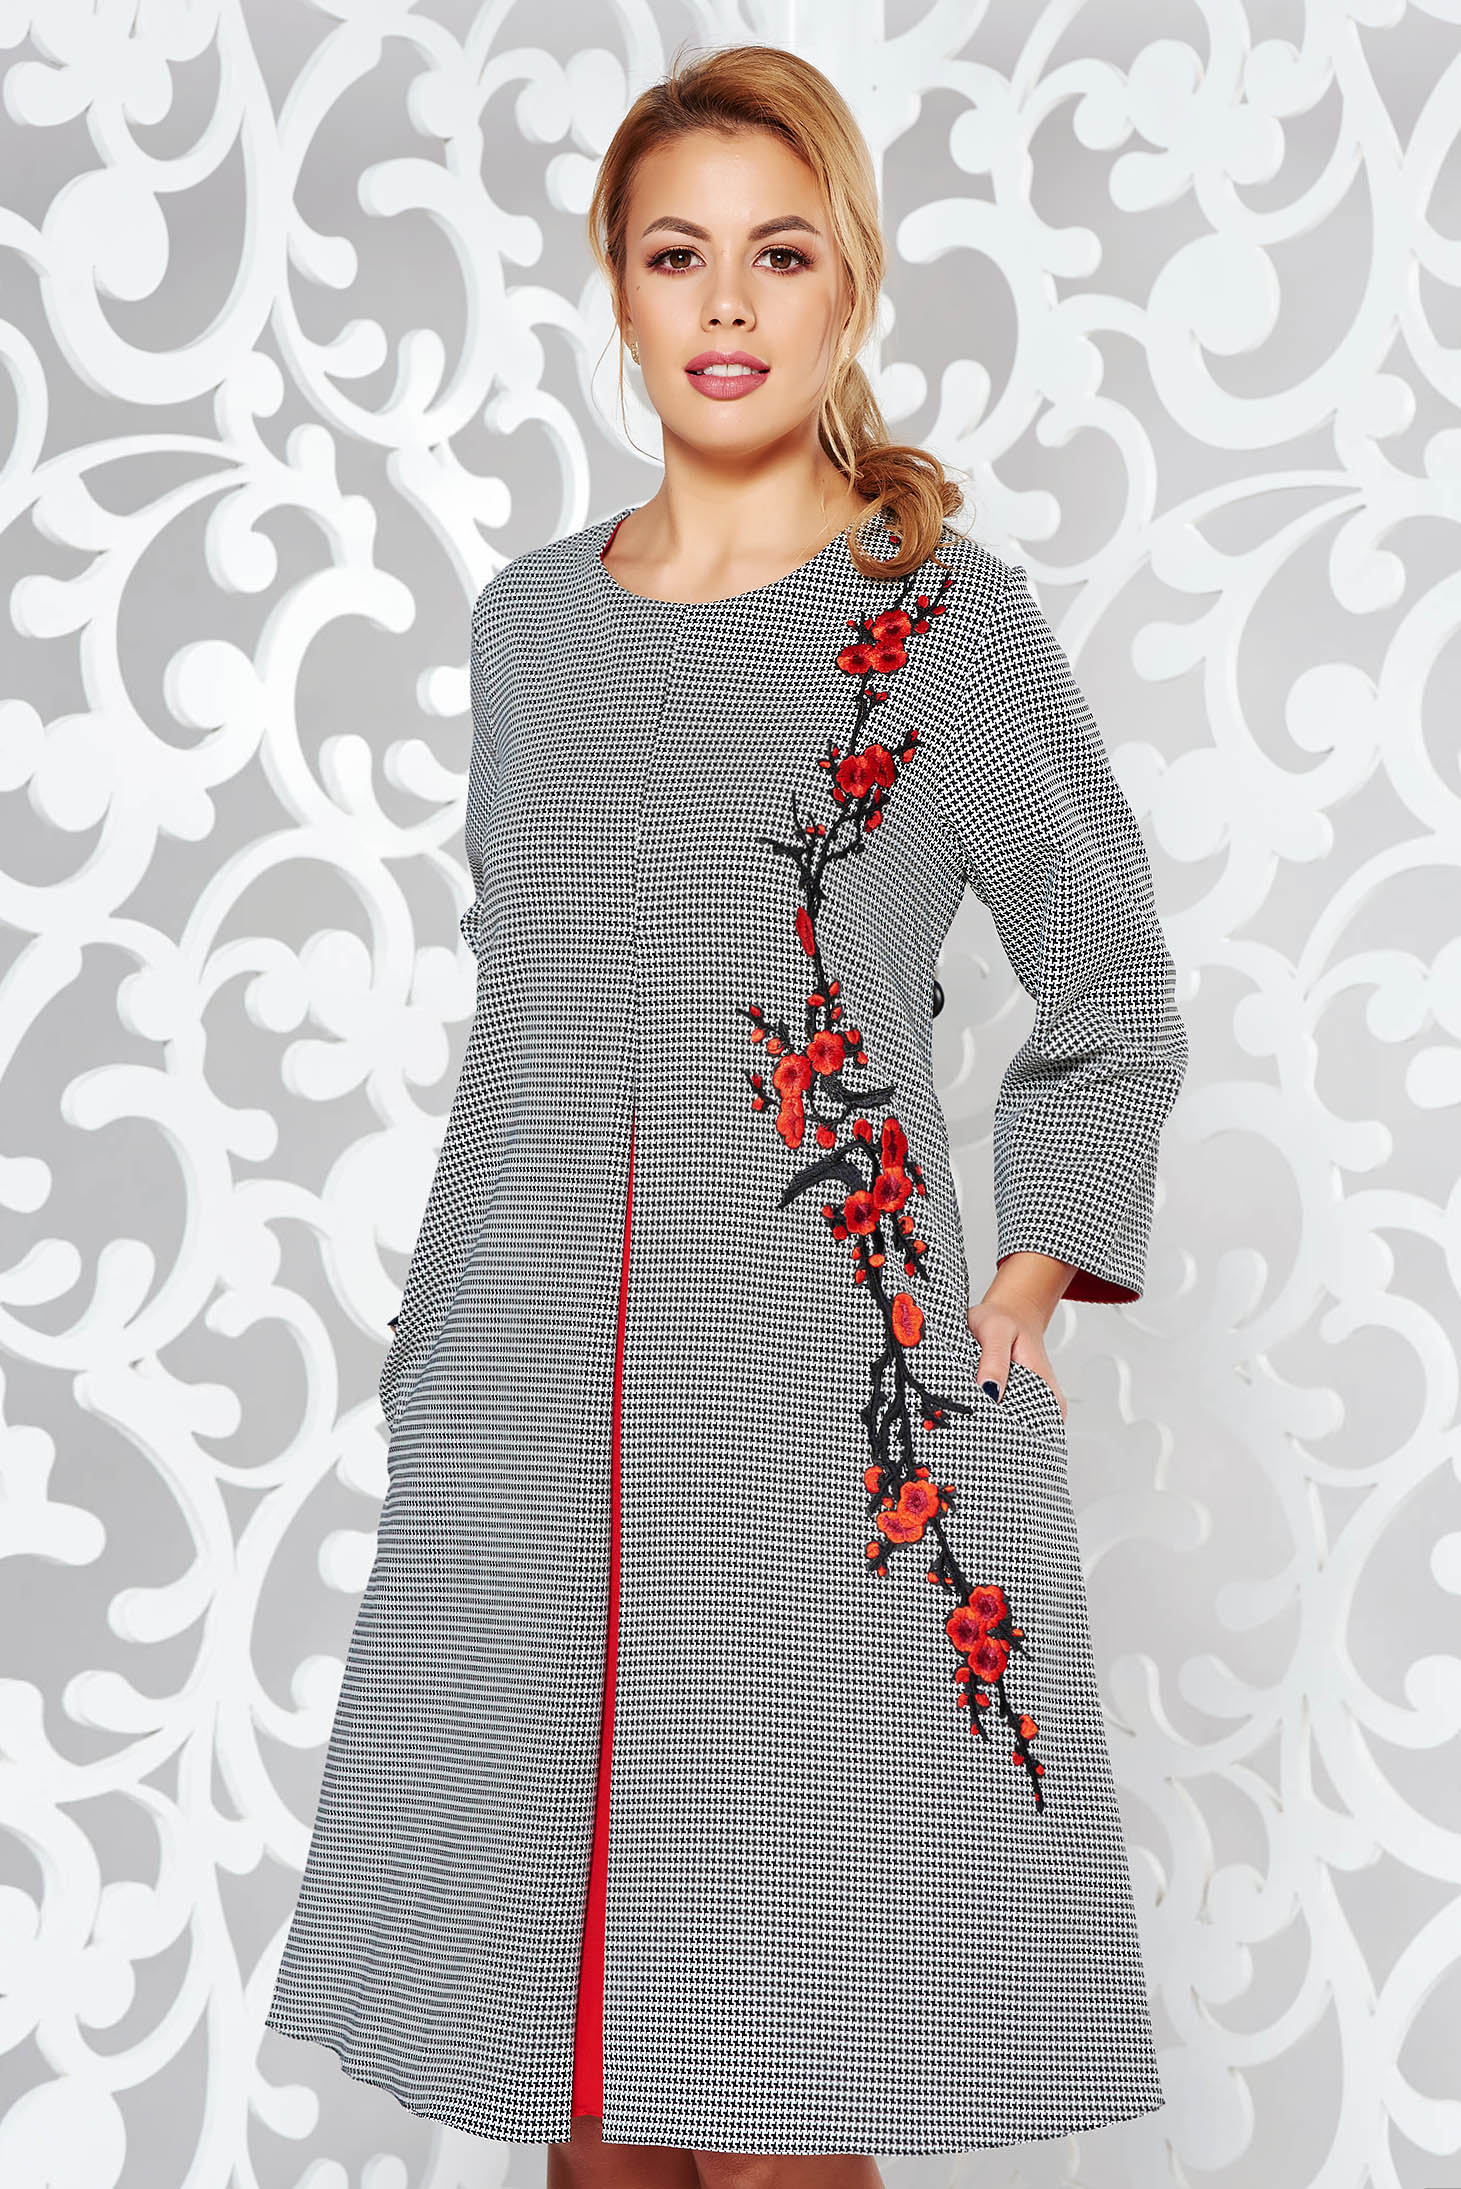 Grey office flared dress from elastic fabric with embroidery details with chequers